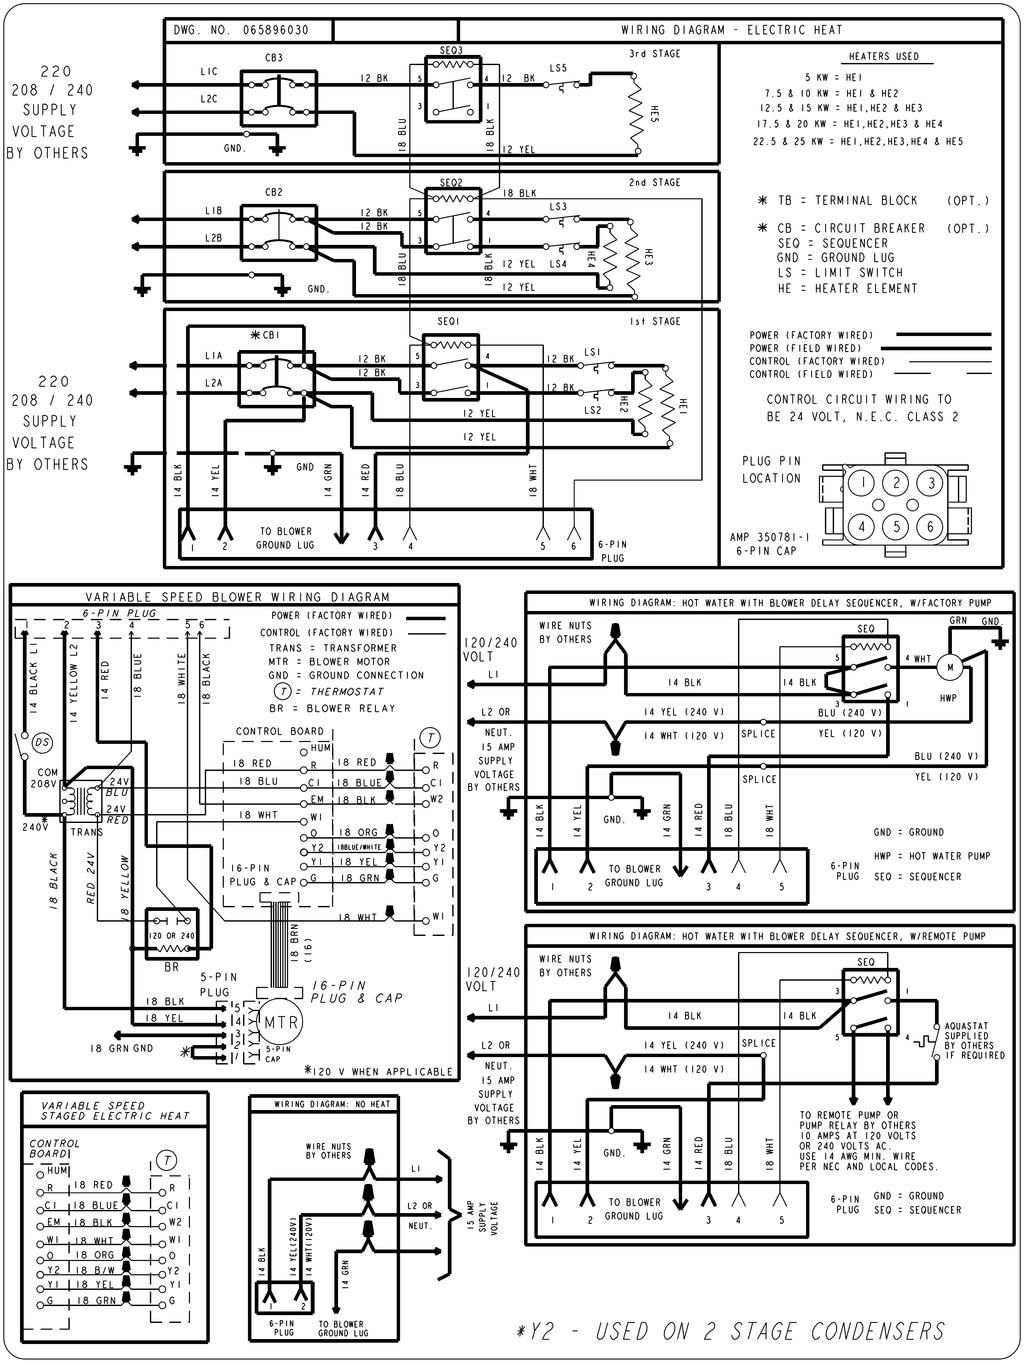 R Series Multi Position Air Handler Electric Or No Heat With High Efficiency Wiring Diagram D Is C O N Ti U Ed Variable Speed